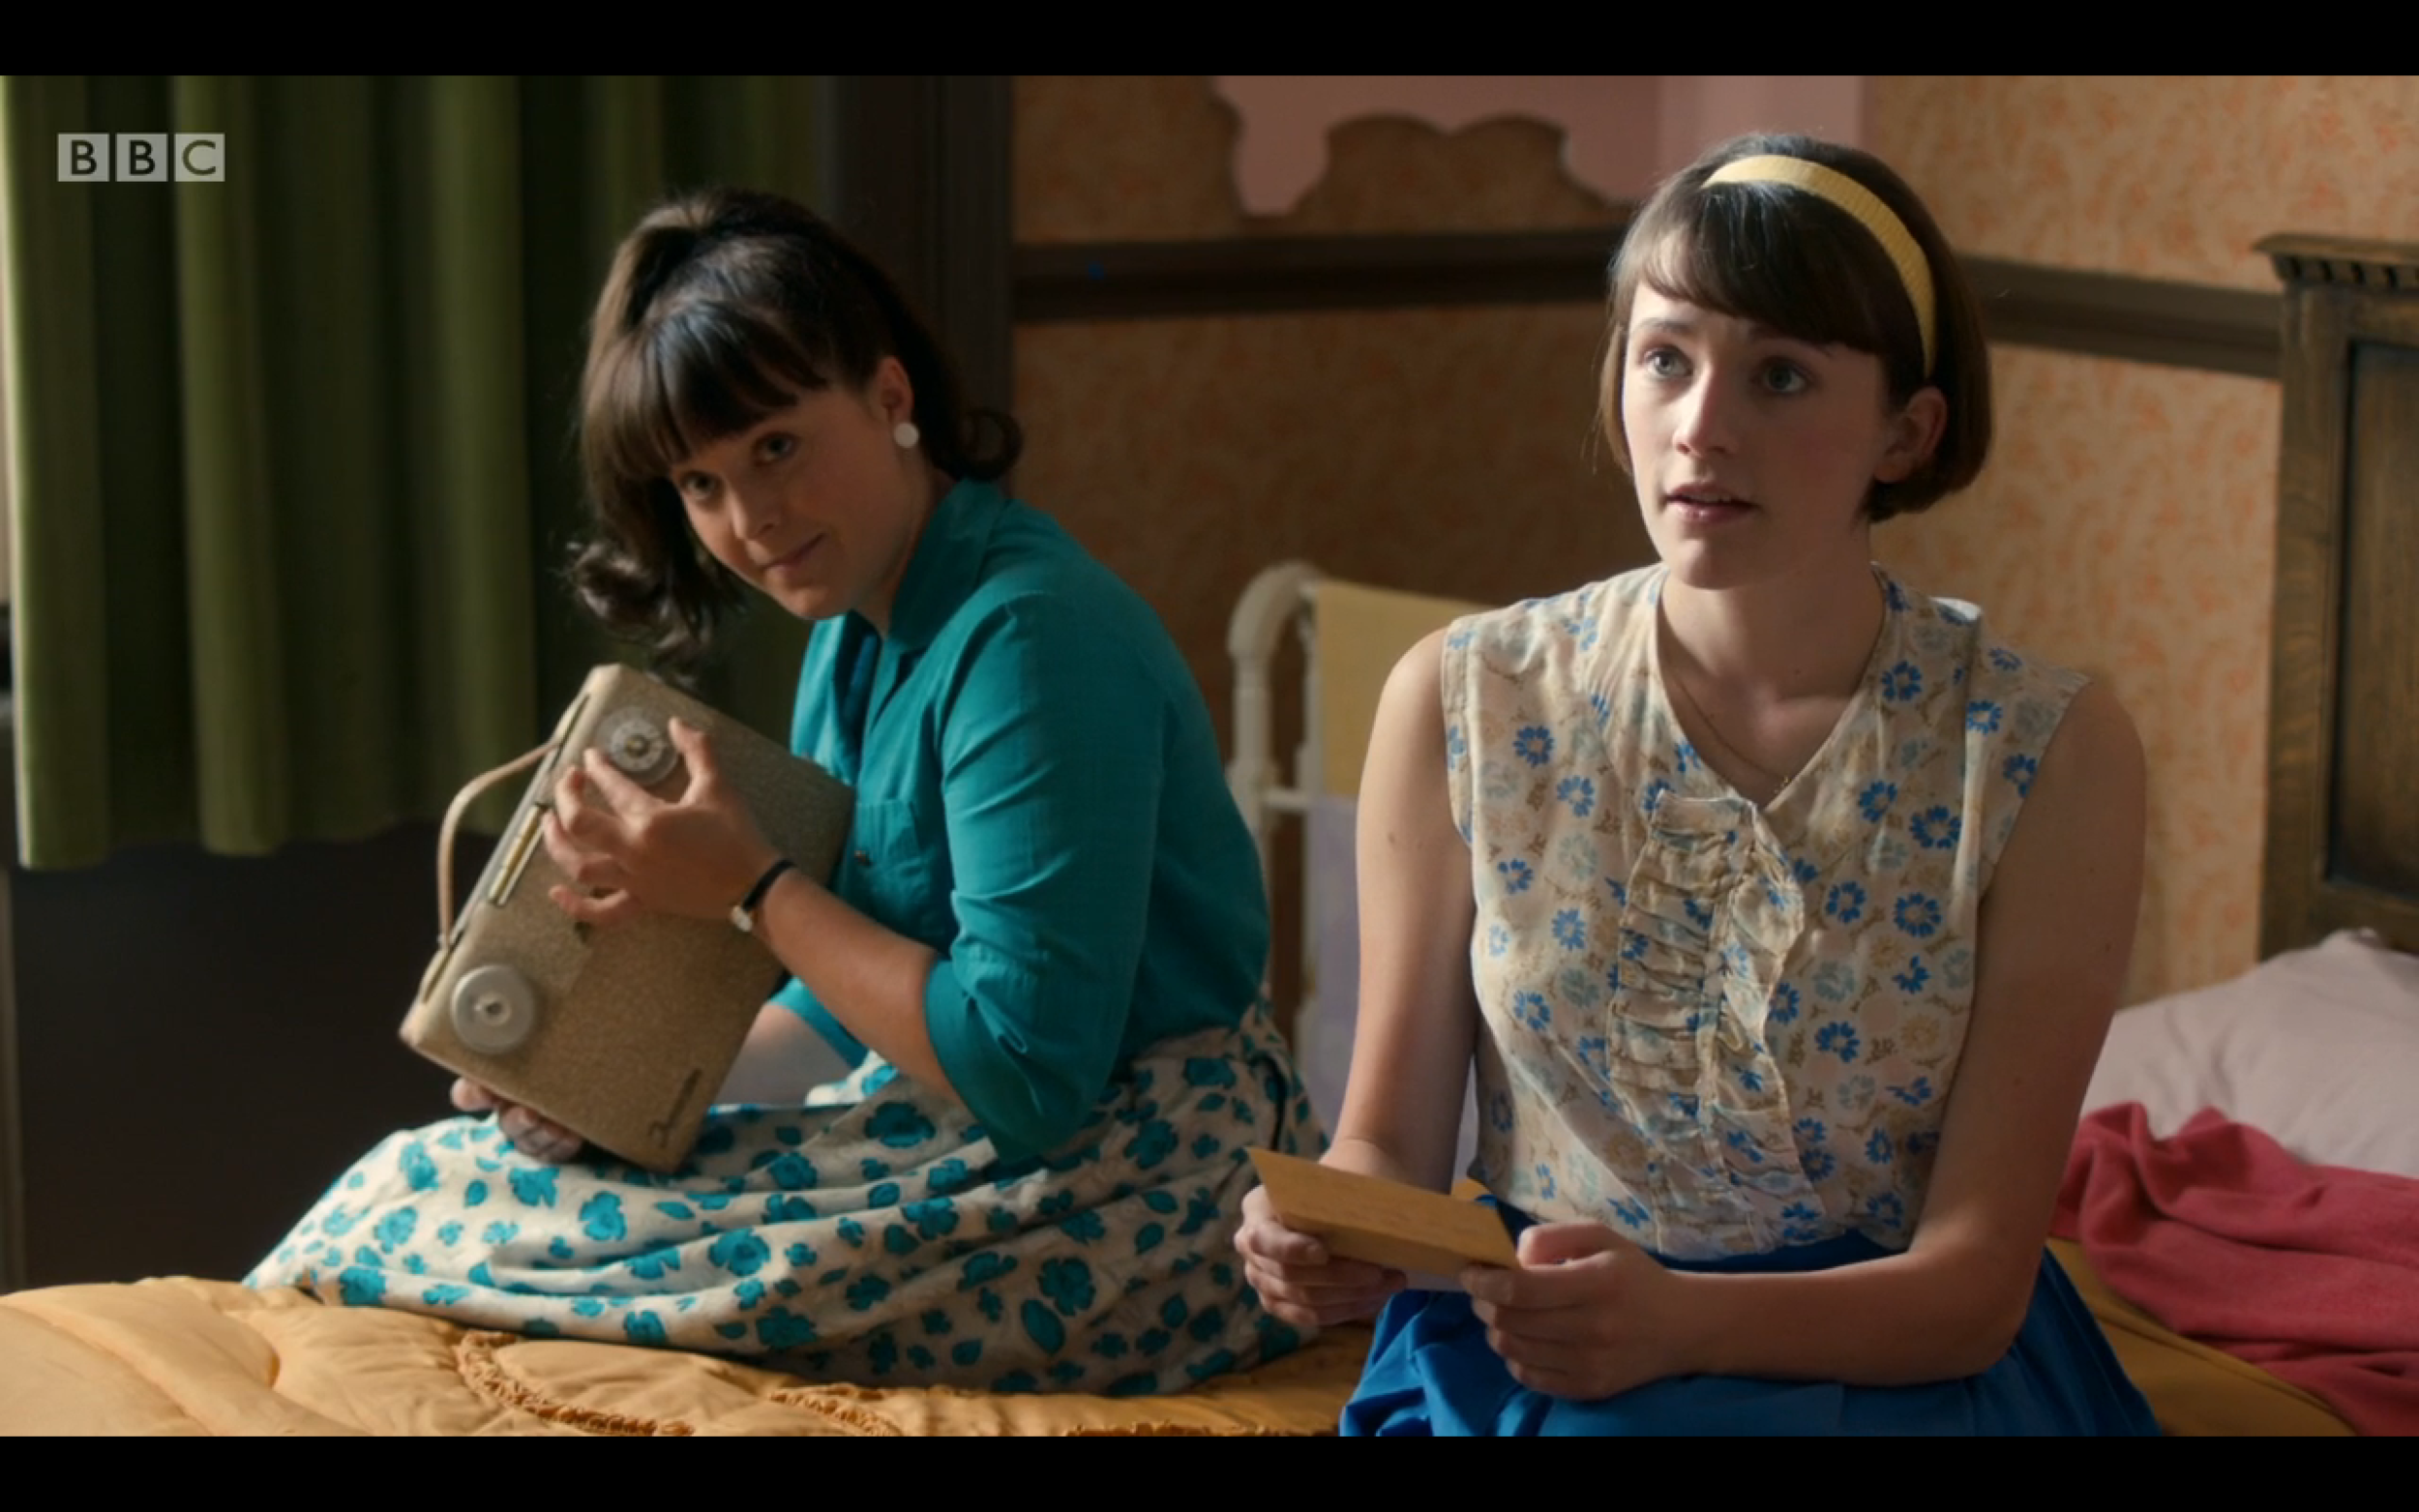 Call_the_midwife_KATE_REID_DOP_1.png